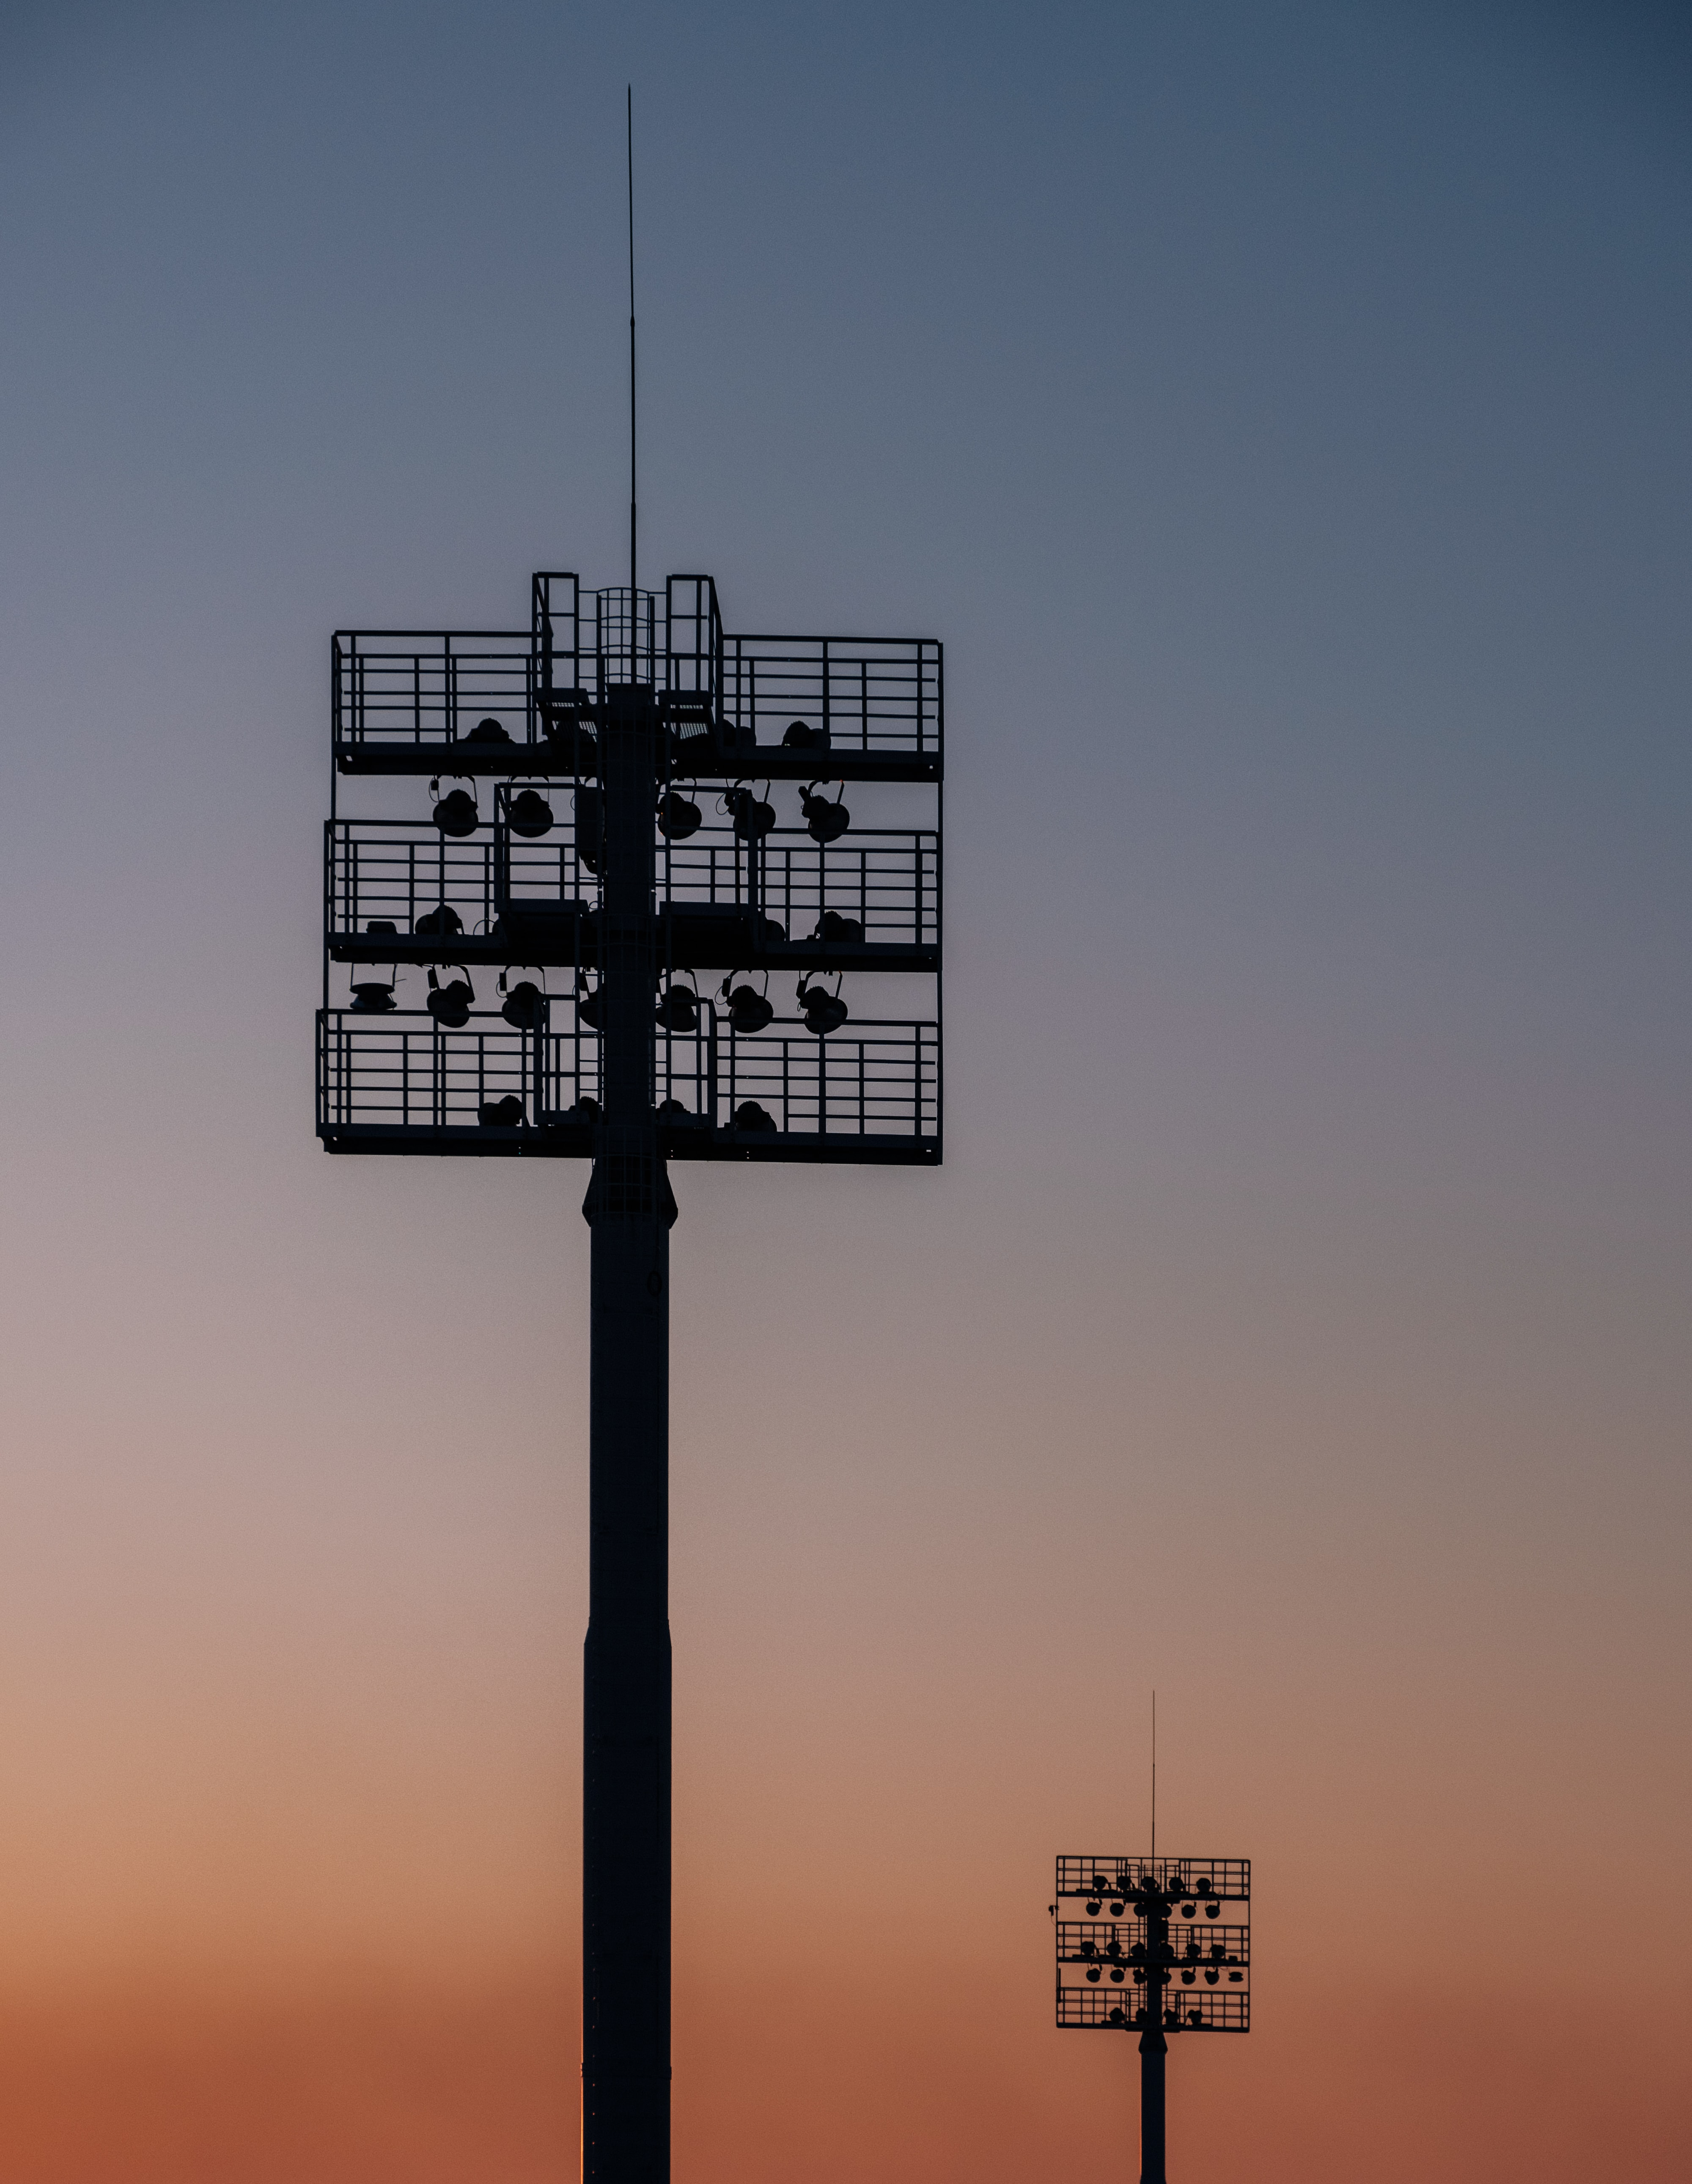 silhouette of two spot light tower